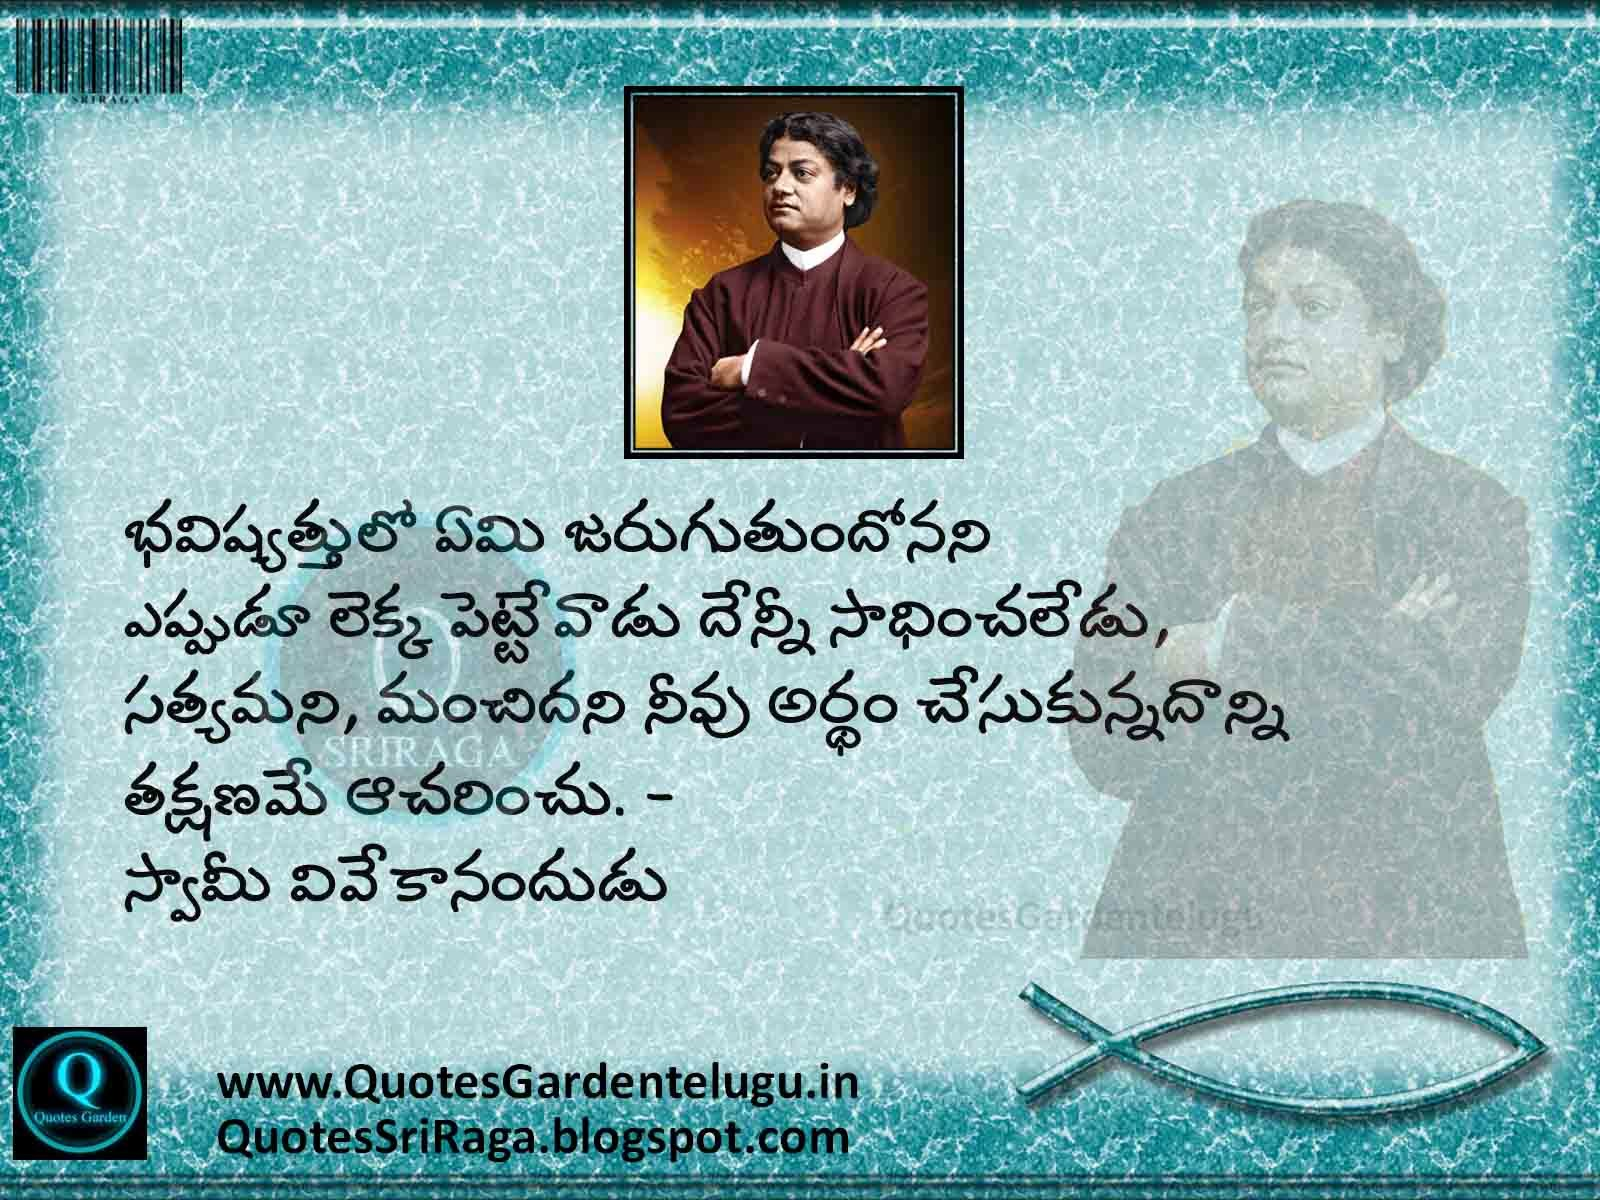 Vivekananda telugu quotes - Vivekananda Best Inpsirational quotes - Vivekananda inspirational quotes in telugu - Vivekanda Good Reads Vivekananda Best Inspirational Quotes Vivekananda Inspiring Quotes HDwallpapers images